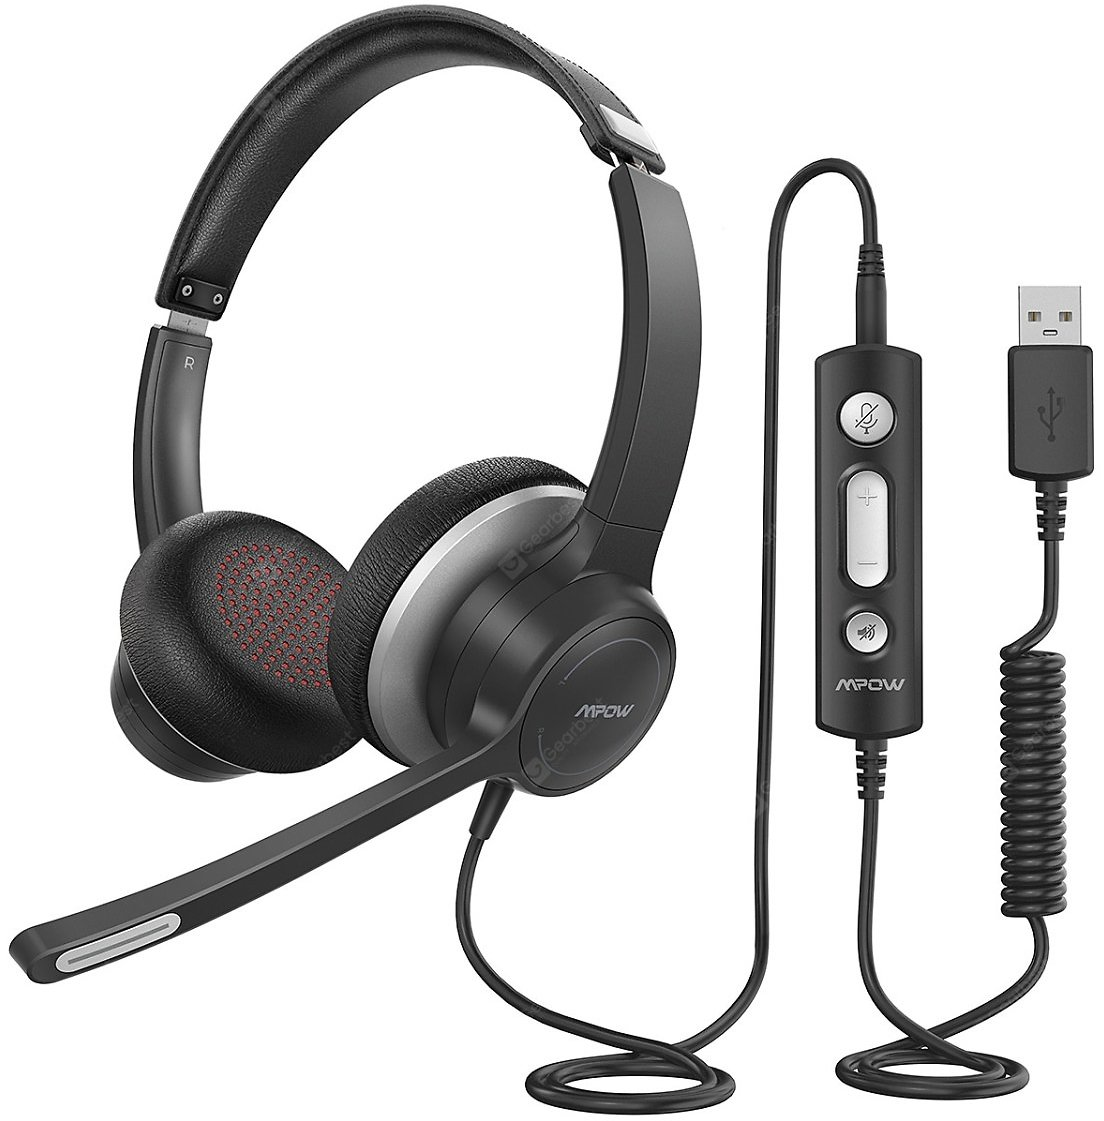 Mpow 328 Wired USB Headphone 3.5mm Computer Headset With Microphone Business Headset For Skype PC Sale, Price & Reviews | Gearbest